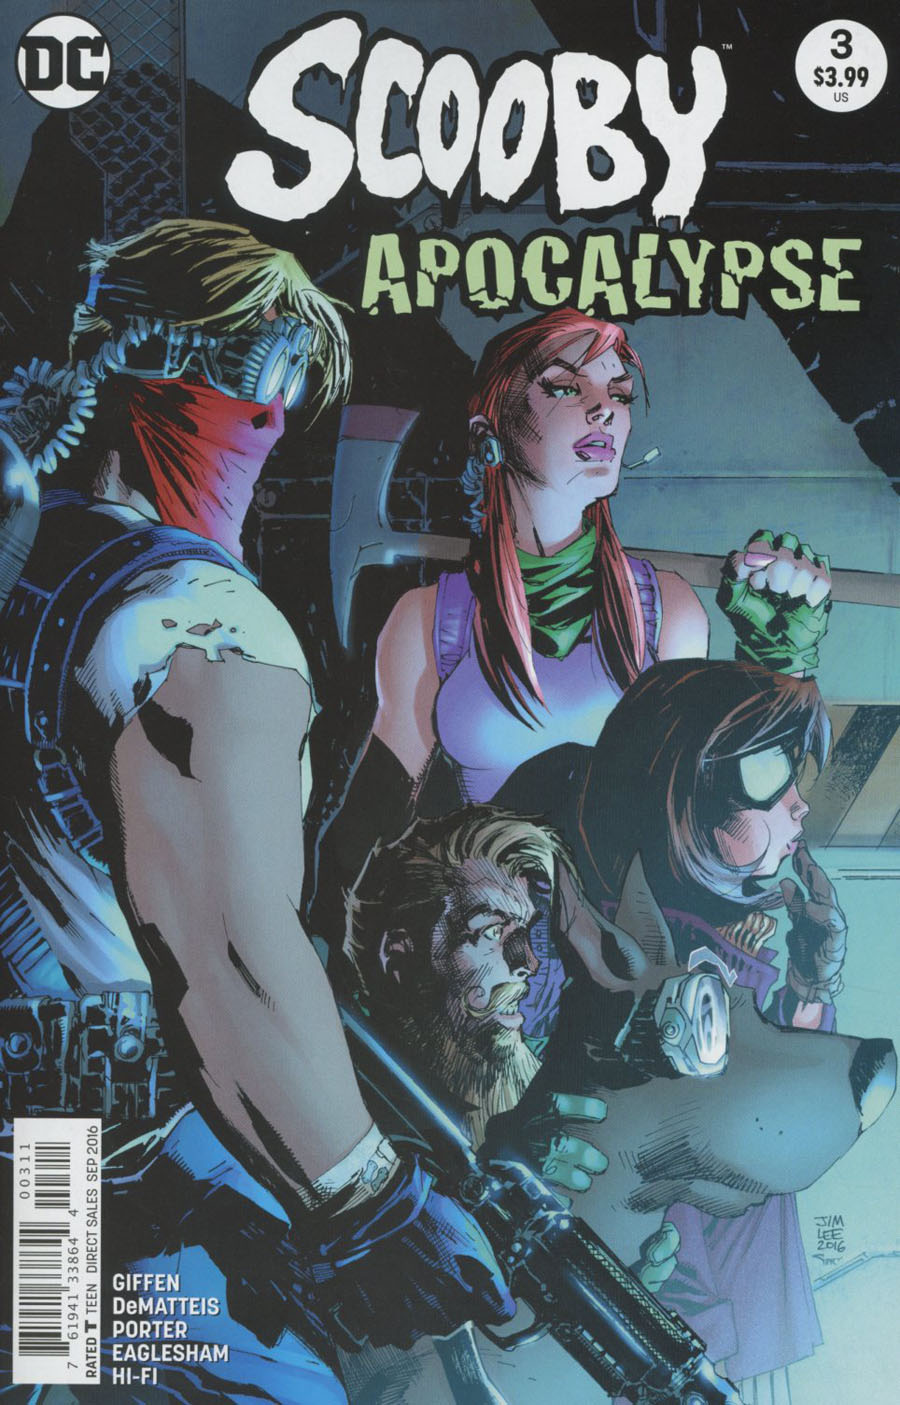 Scooby Apocalypse #3 Cover A Regular Jim Lee Cover